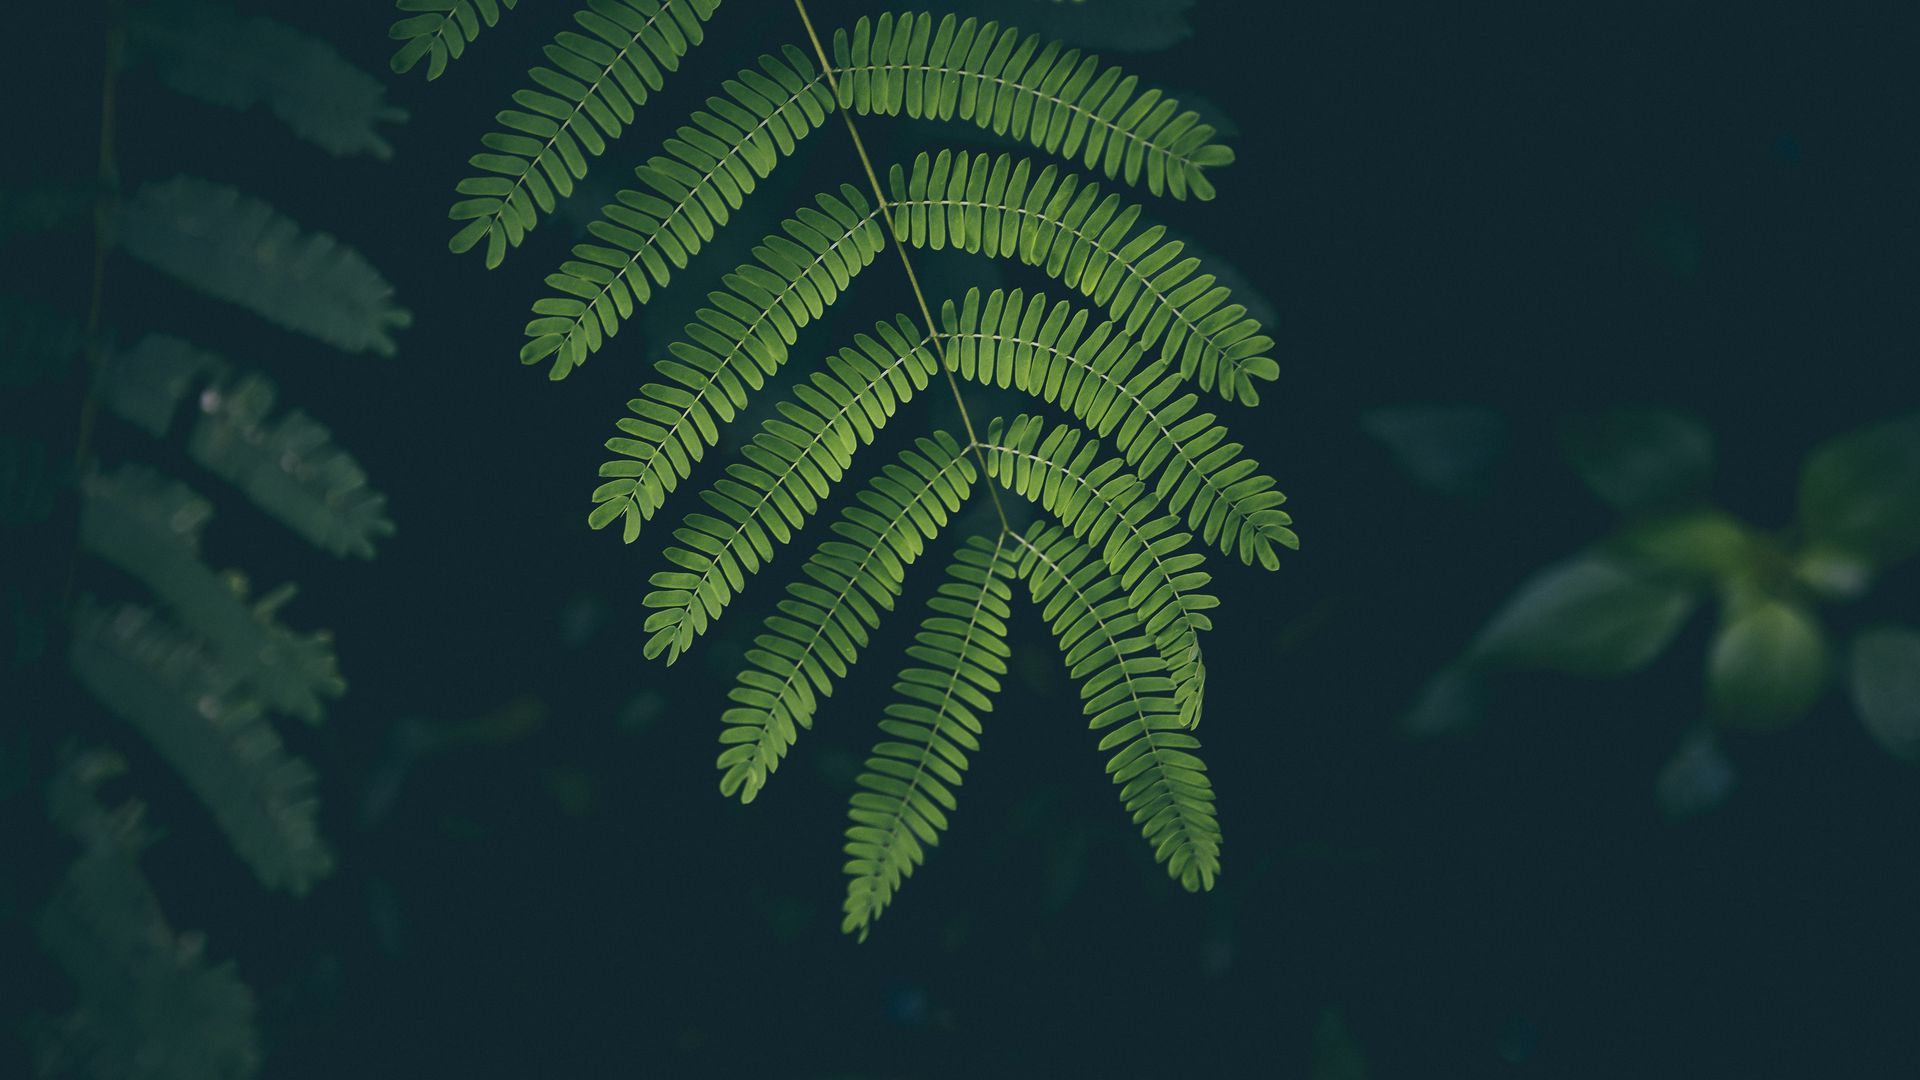 Great Fern Wallpaper